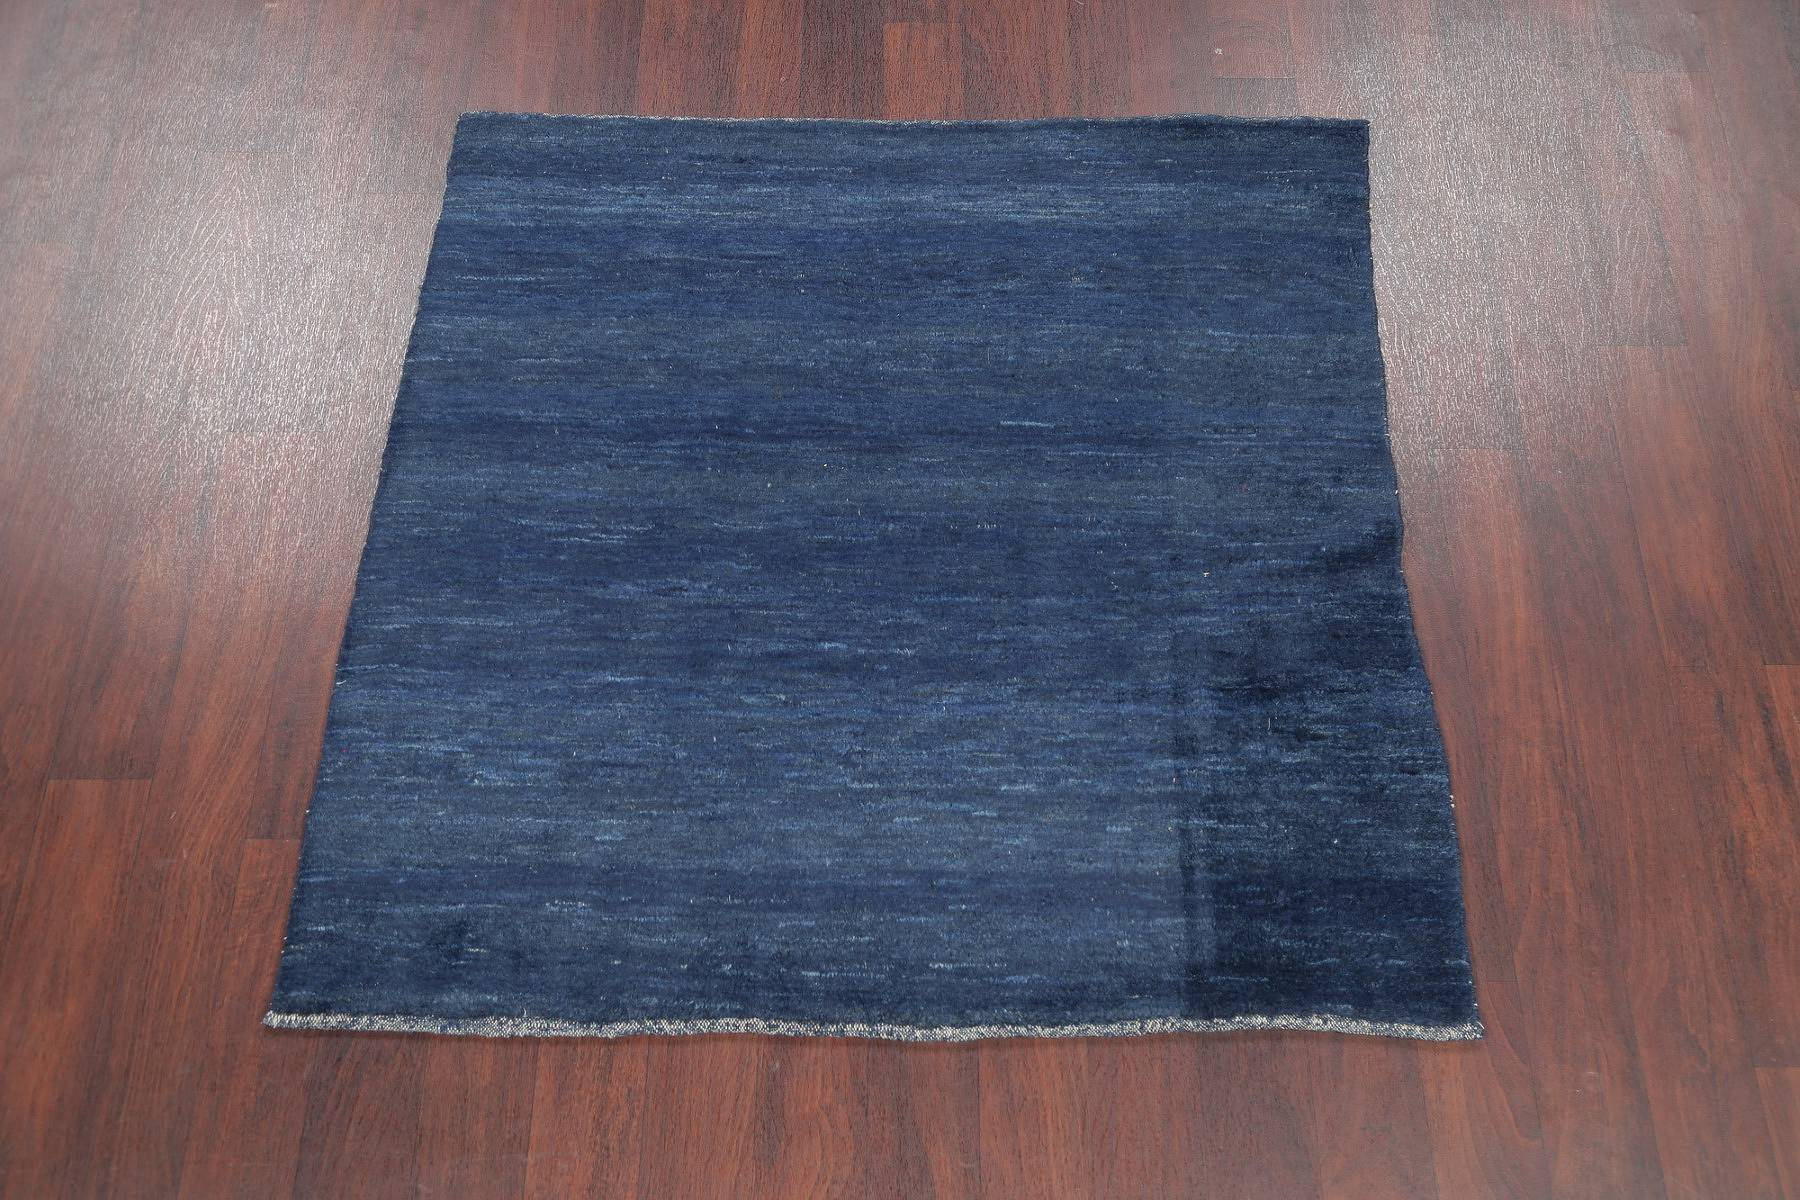 Hand-Knotted Blue Solid Gabbeh Zollanvari Persian Area Rug Square Wool 5x5